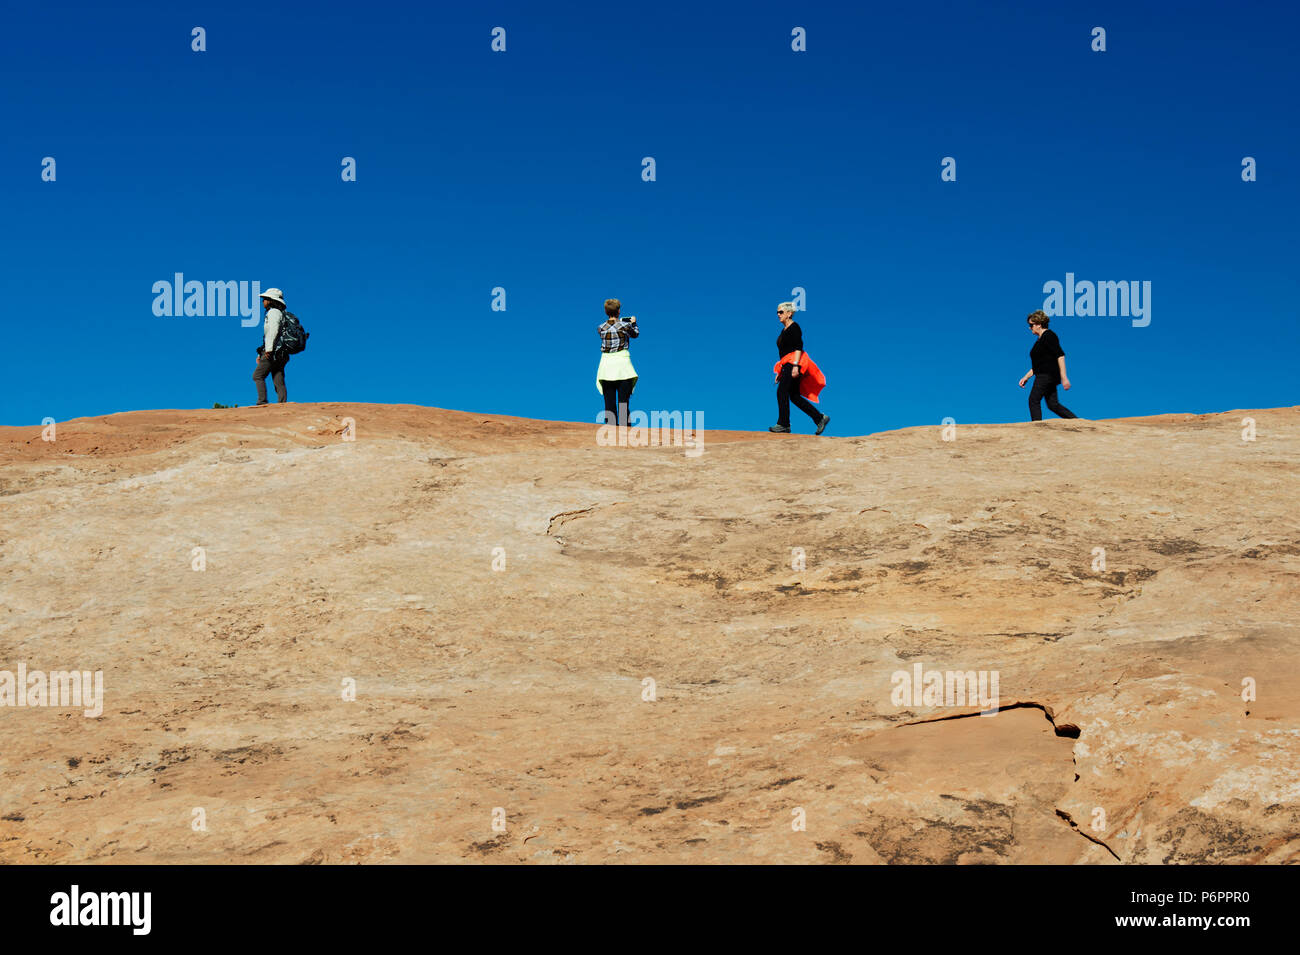 Four female hikers walking and taking pictures on Upheaval Dome Overlook trail, Canyonland National Park, Utah, USA. - Stock Image